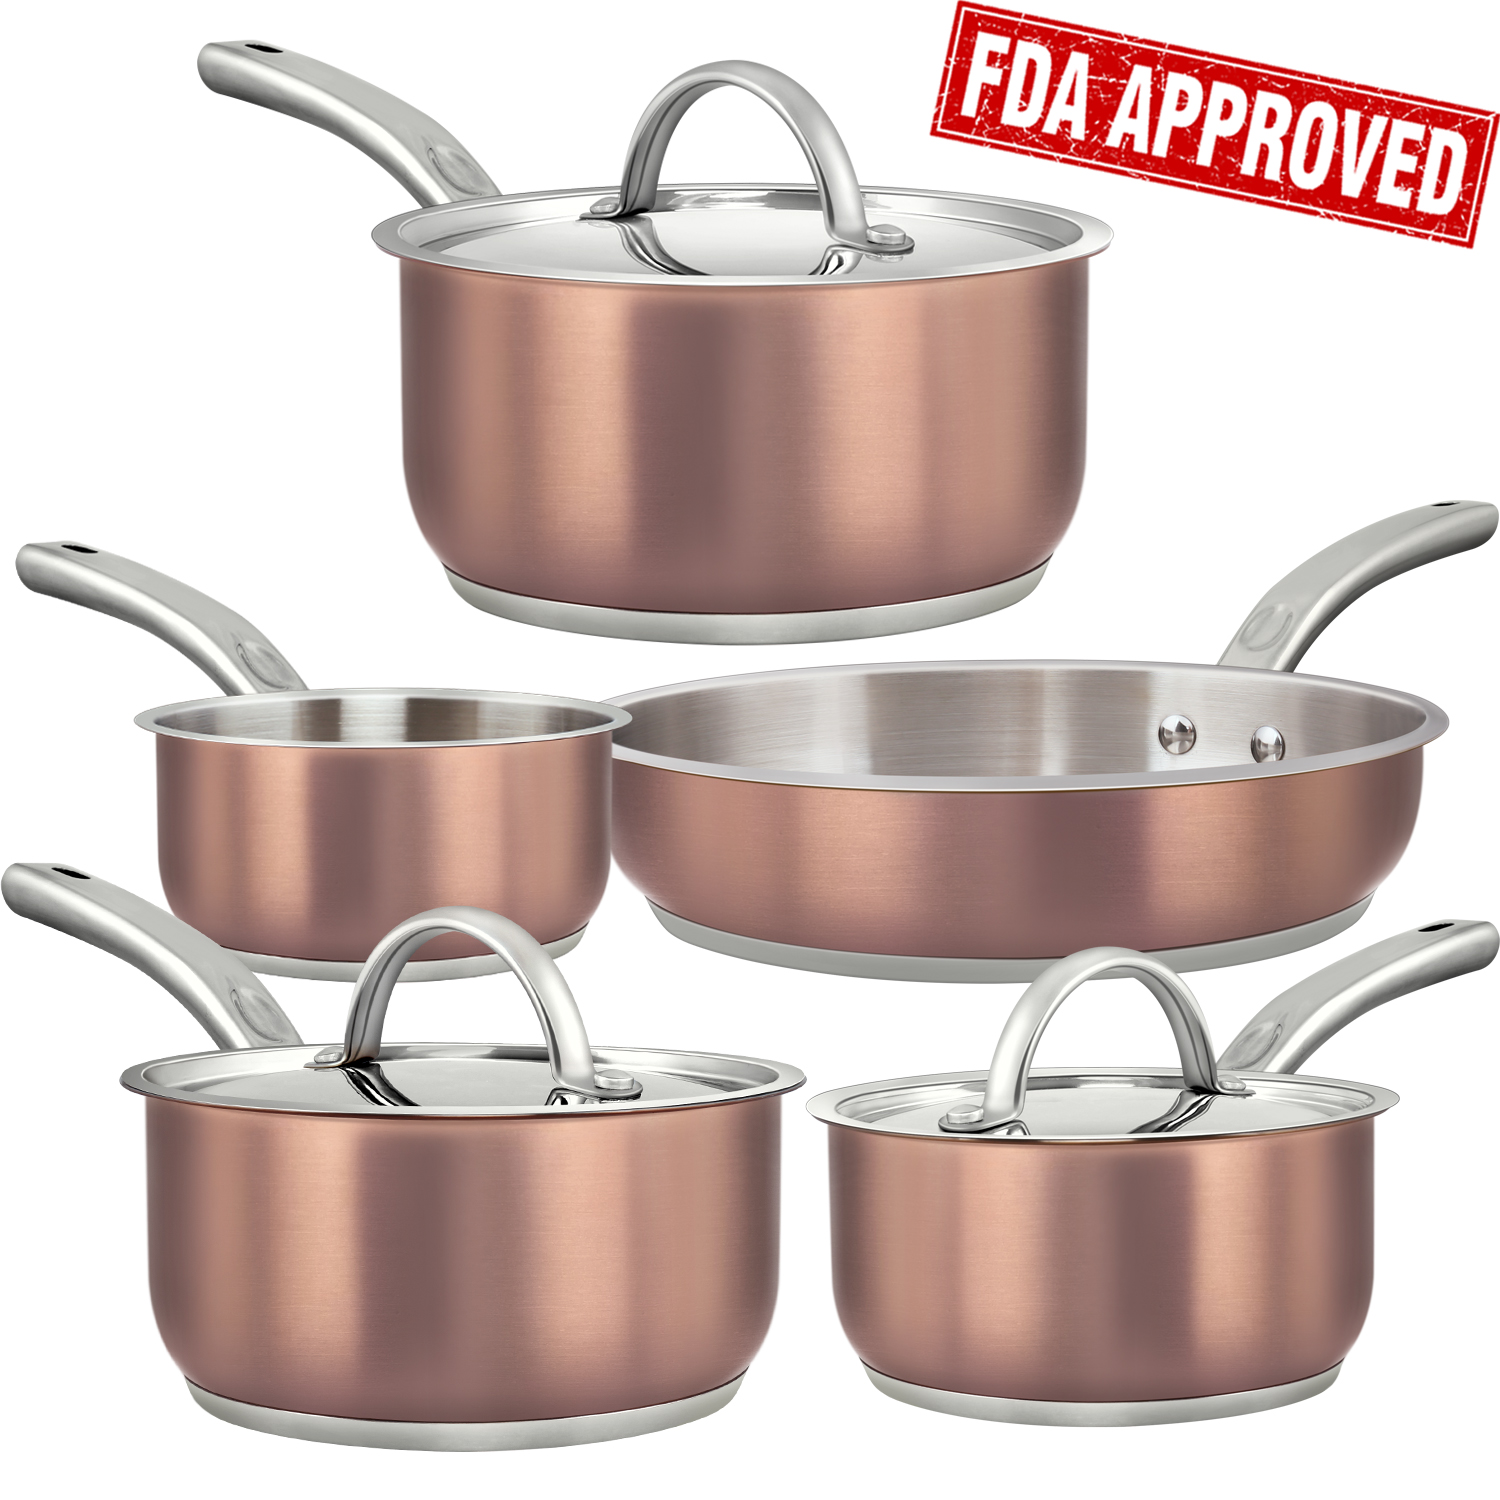 Tri-Ply Copper Stainless Steel Non-Stick Cookware Set, Save $10 with Amazon Coupon